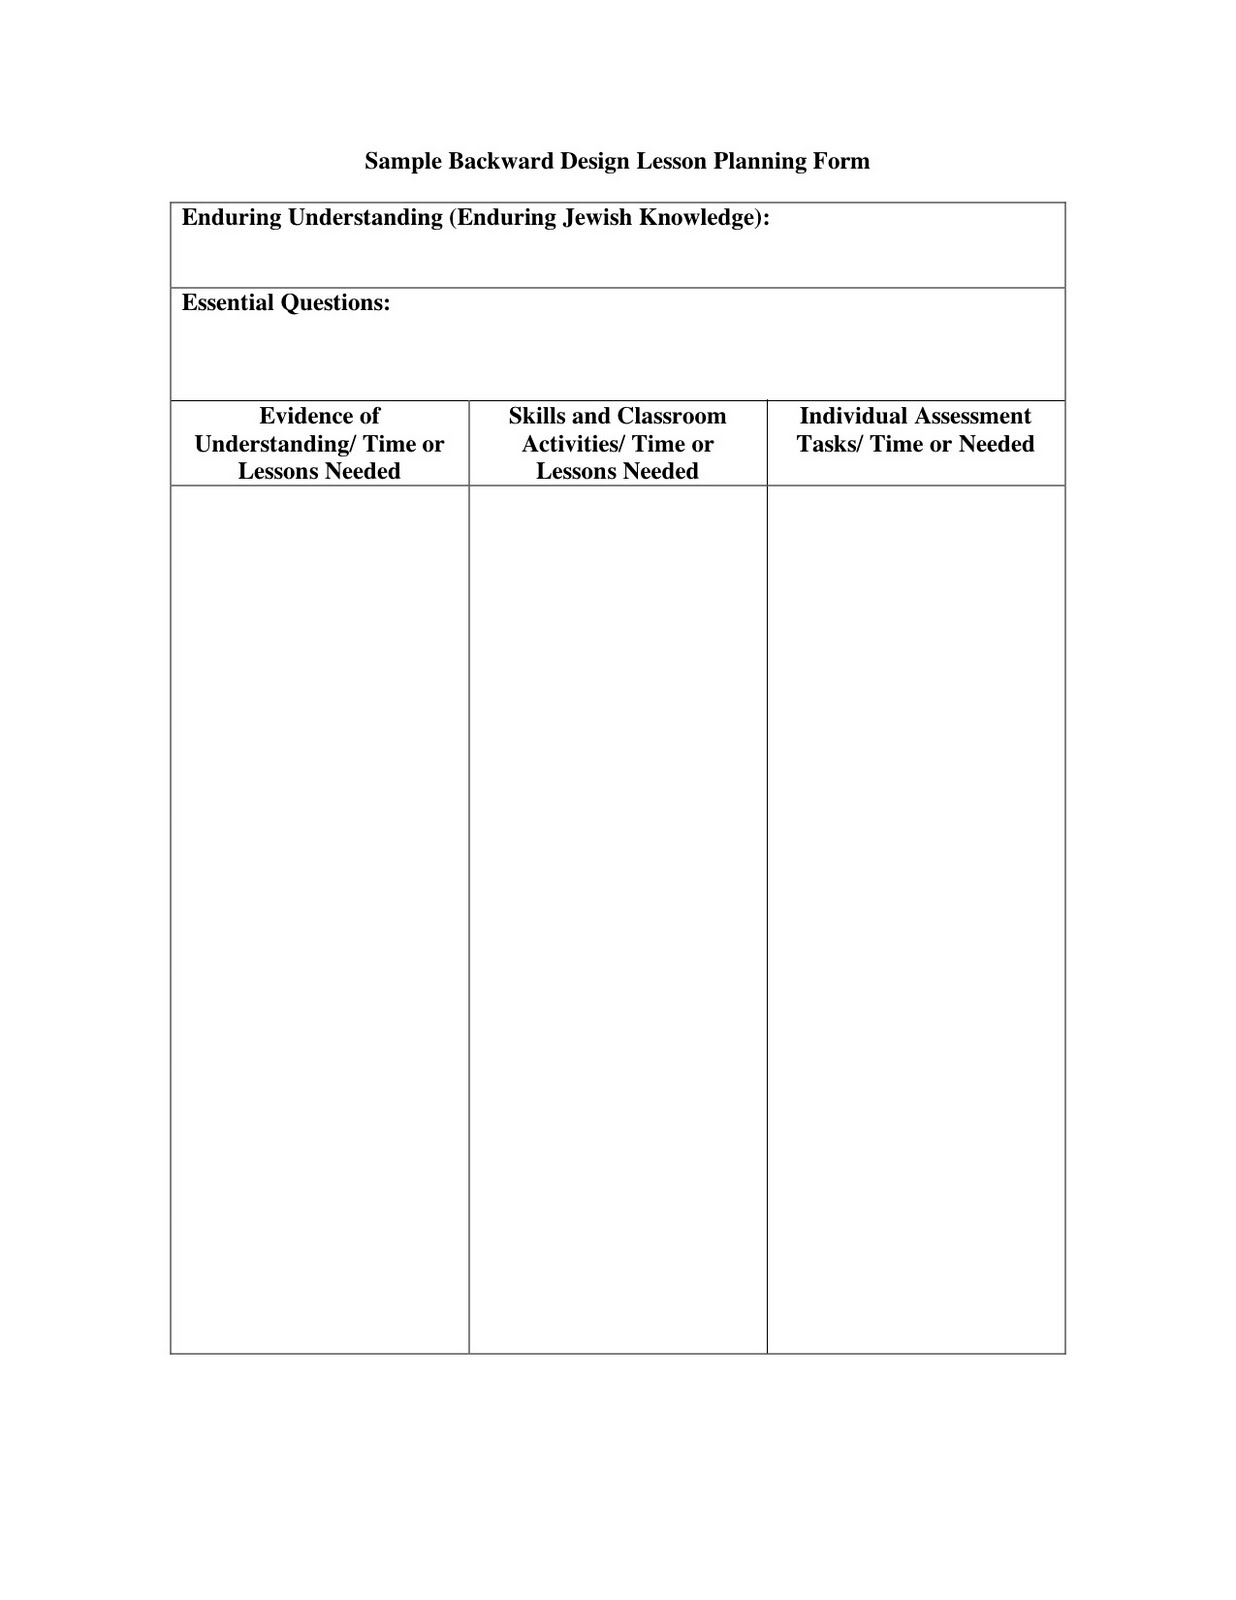 part 3 learning plan differentiated An action guide for instructional planning and collegial learning: instructional planning: development of units of instruction, lesson plans, differentiated learning activities part ii: collegial learning step 3.